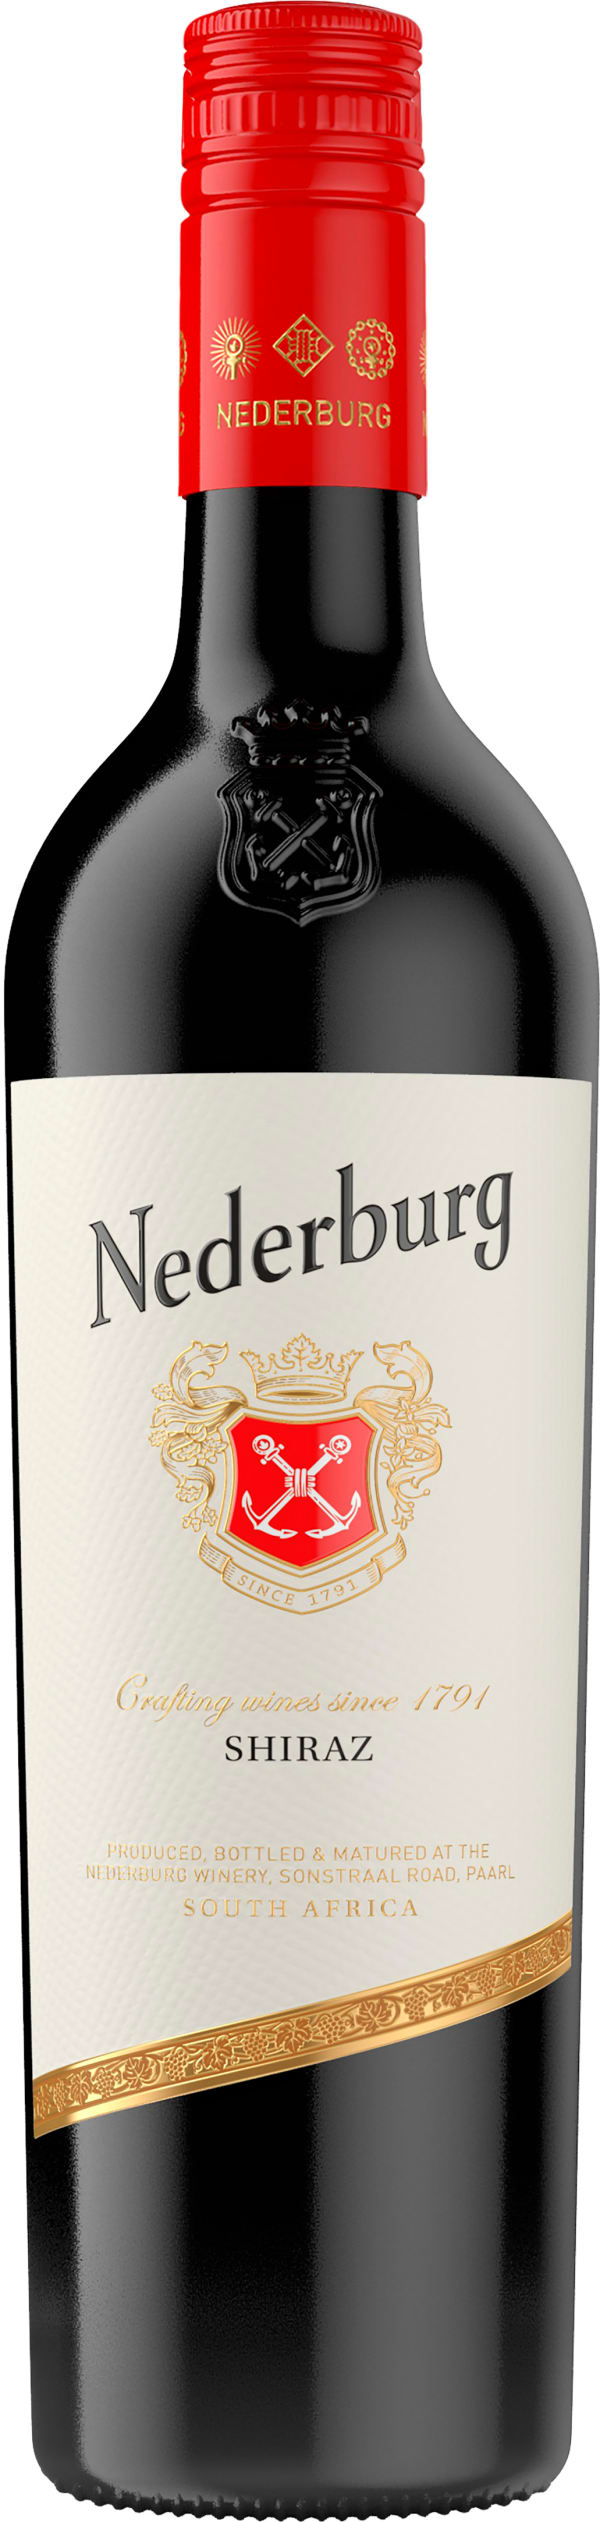 Nederburg The Winemasters Shiraz 2018